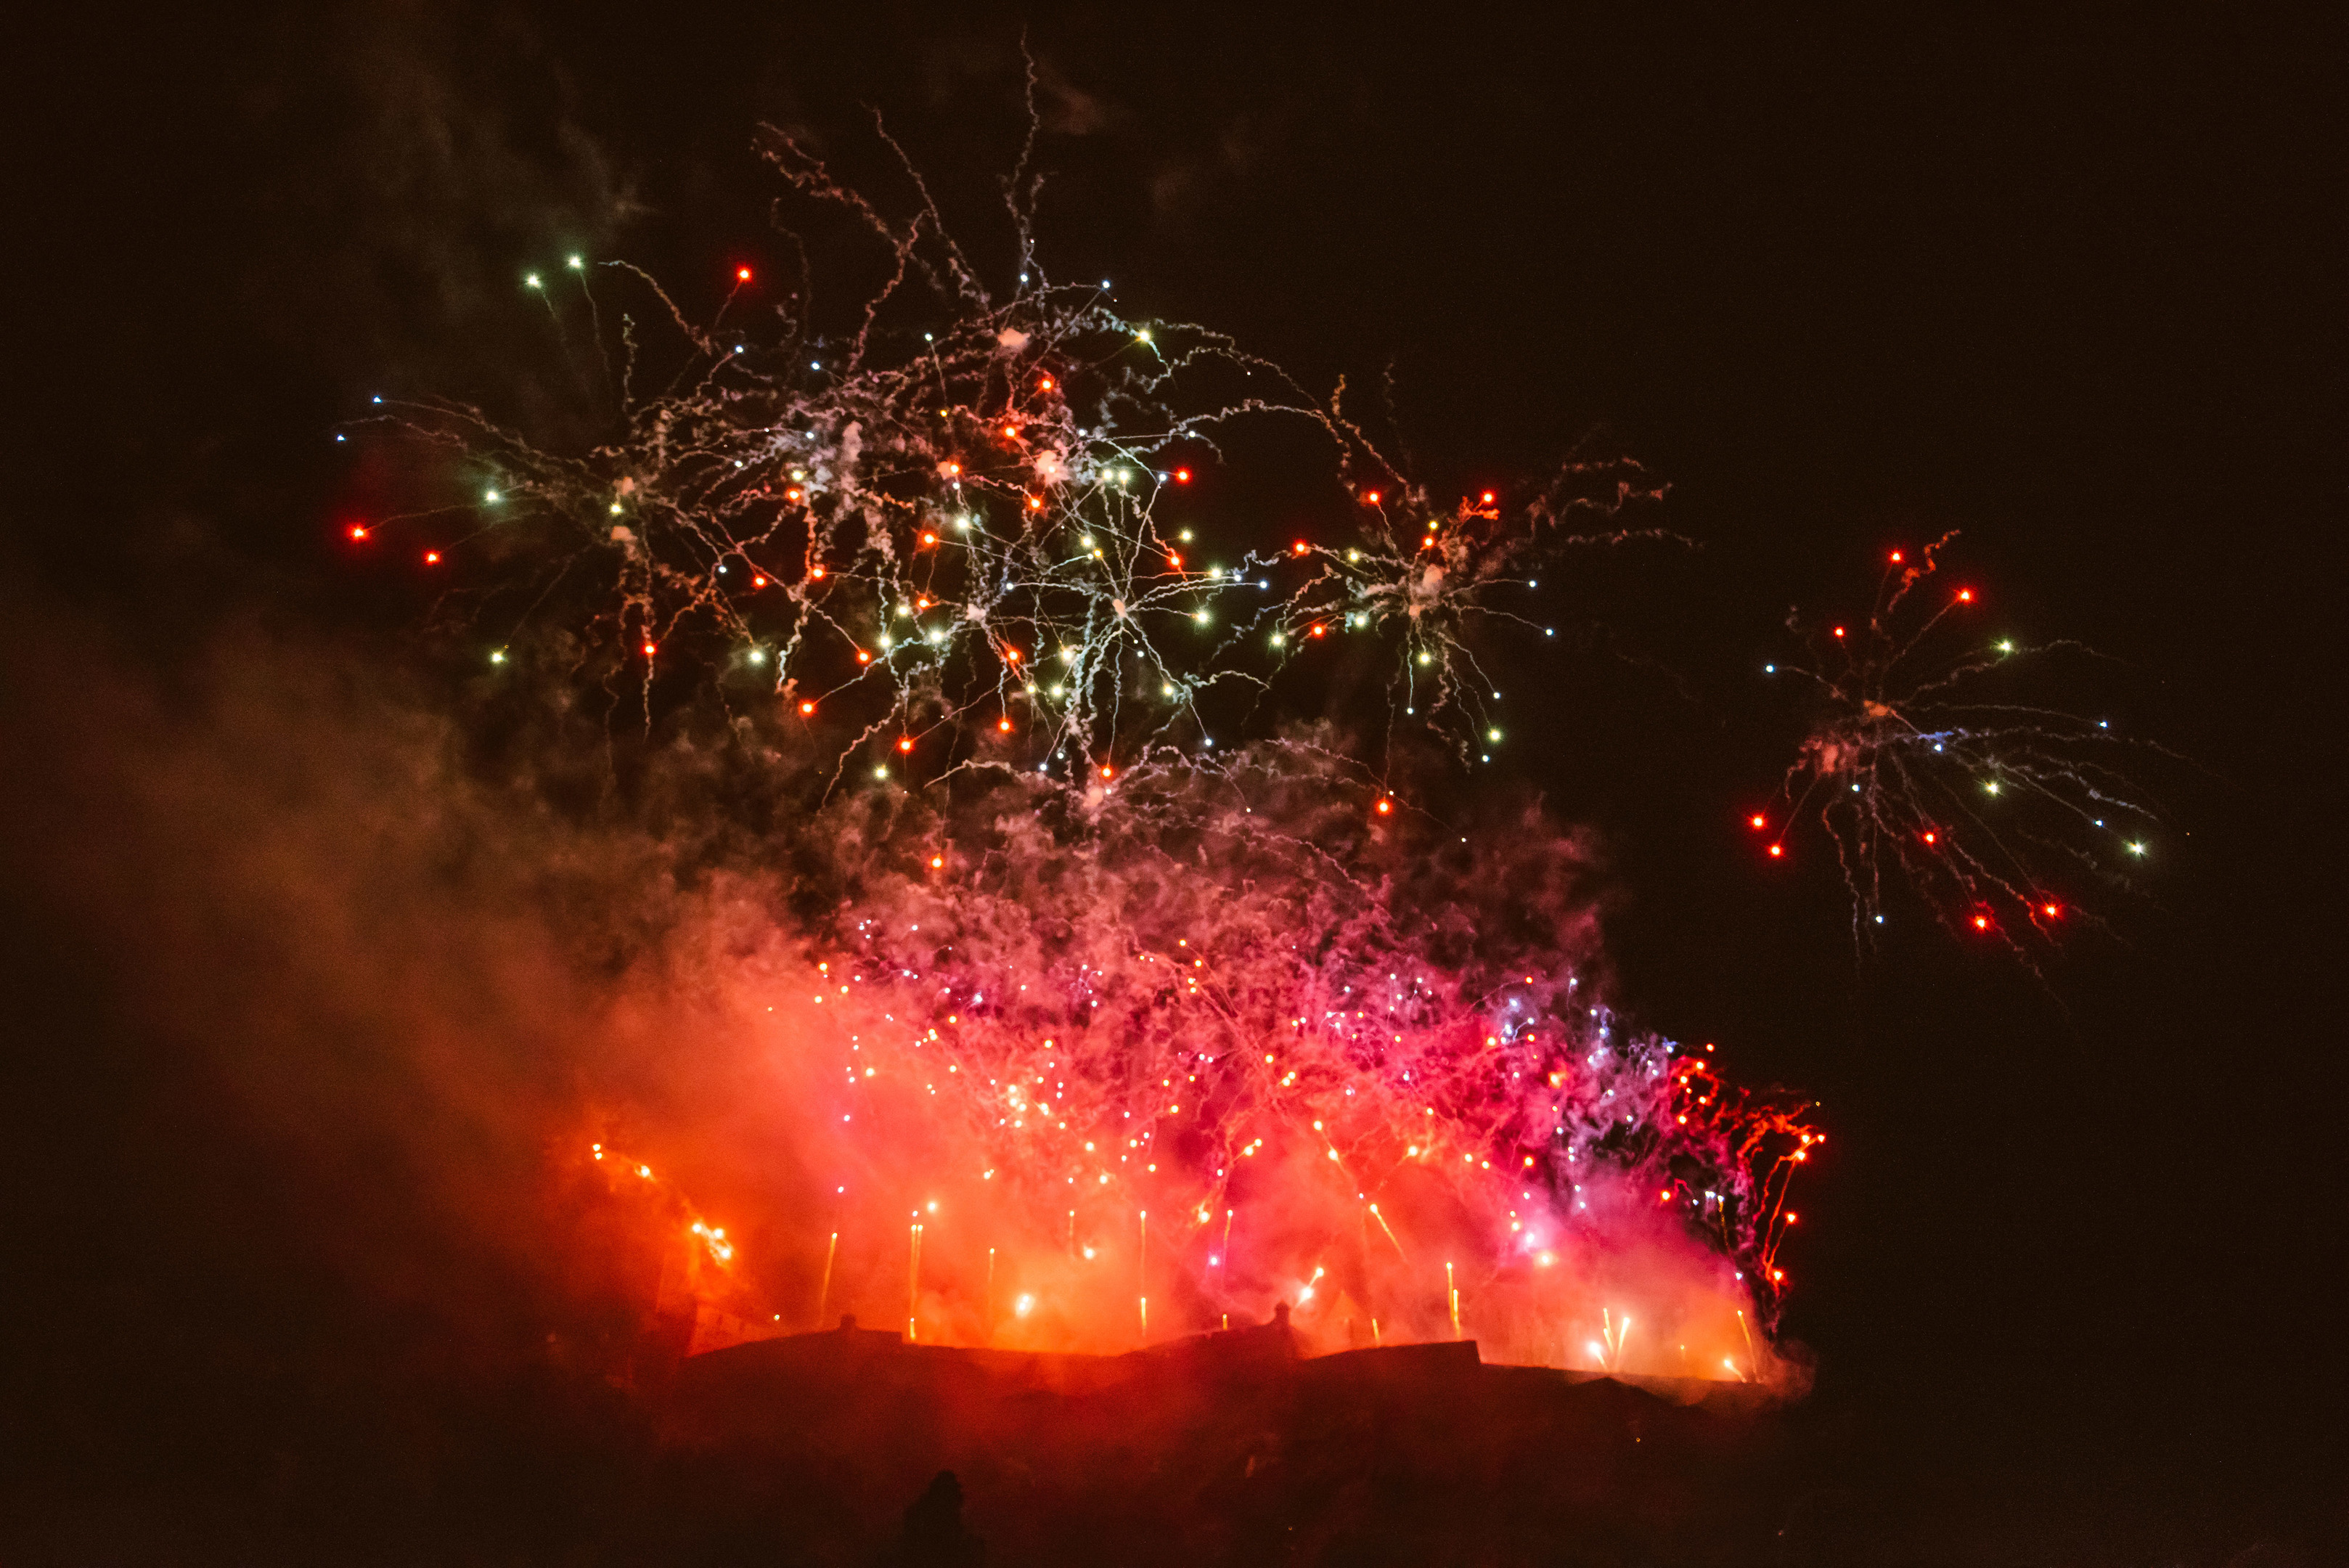 Virgin Money Fireworks Concert - Edinburgh International Festival 2016 (Mihaela Bodlovic)